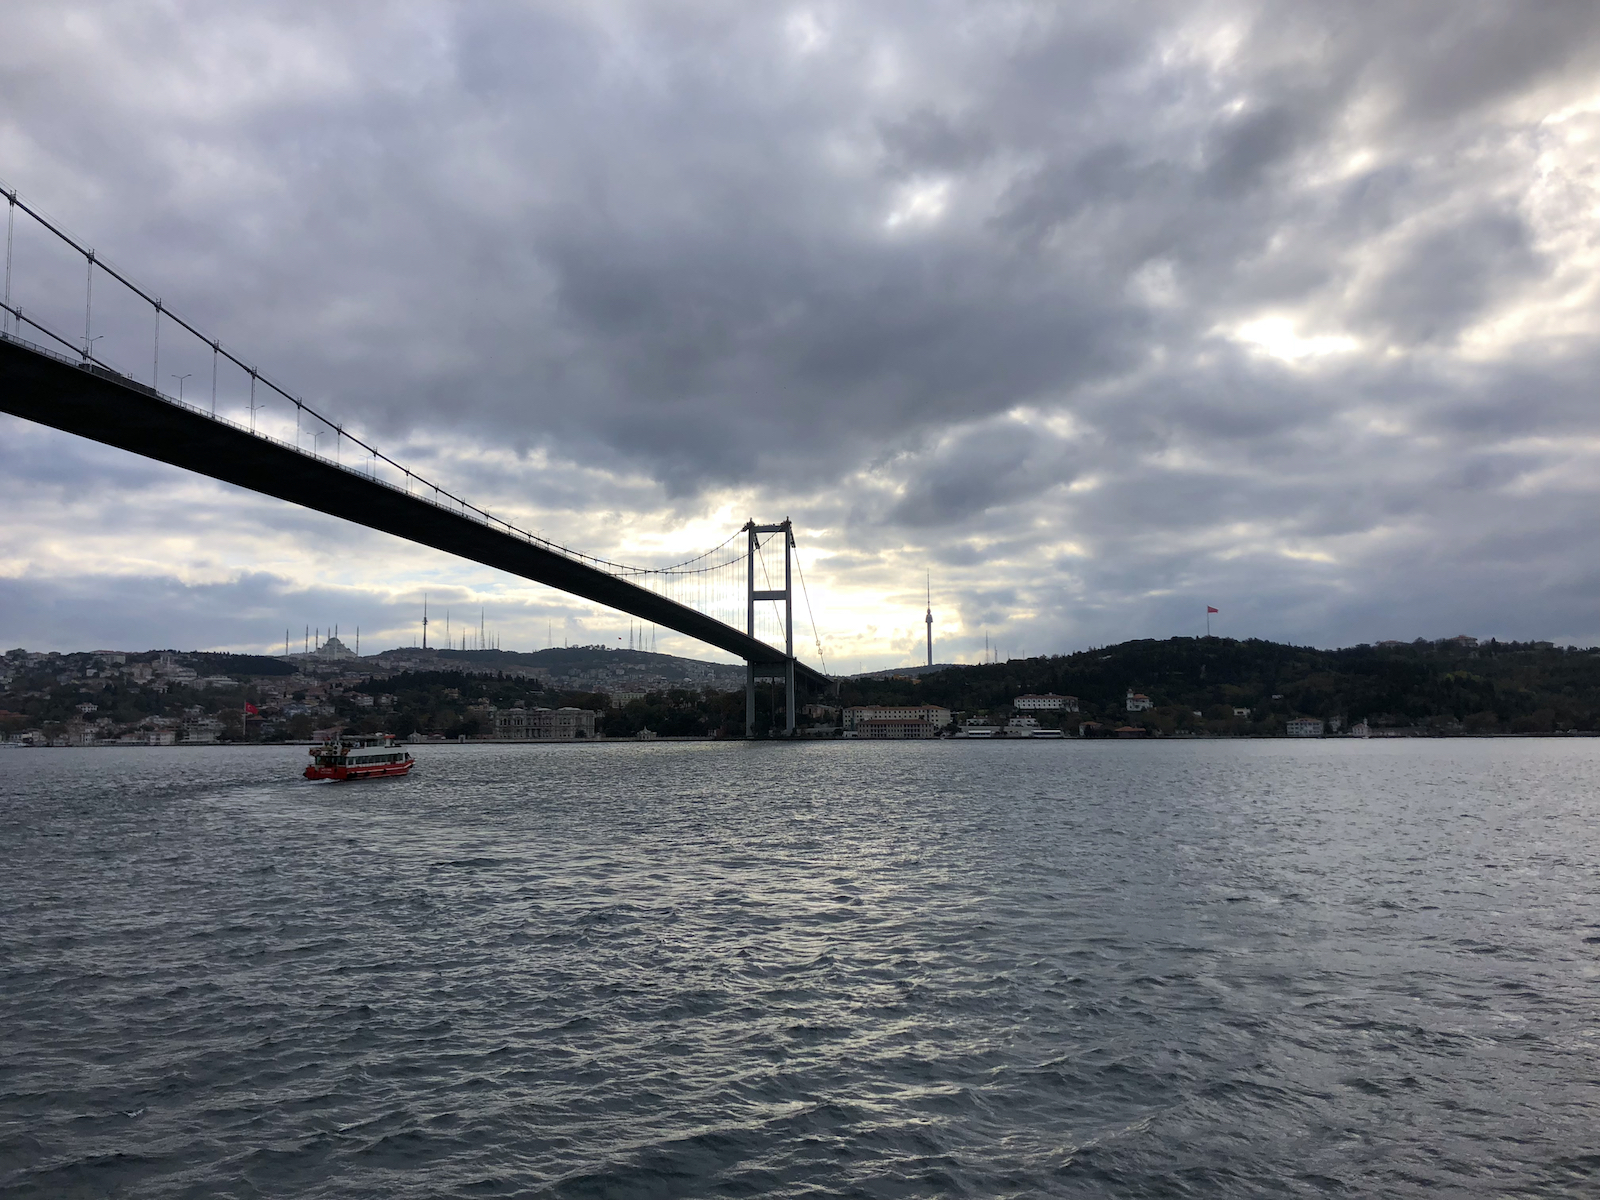 Bosphorus Cruise - Top 11 Things to Do In Istanbul